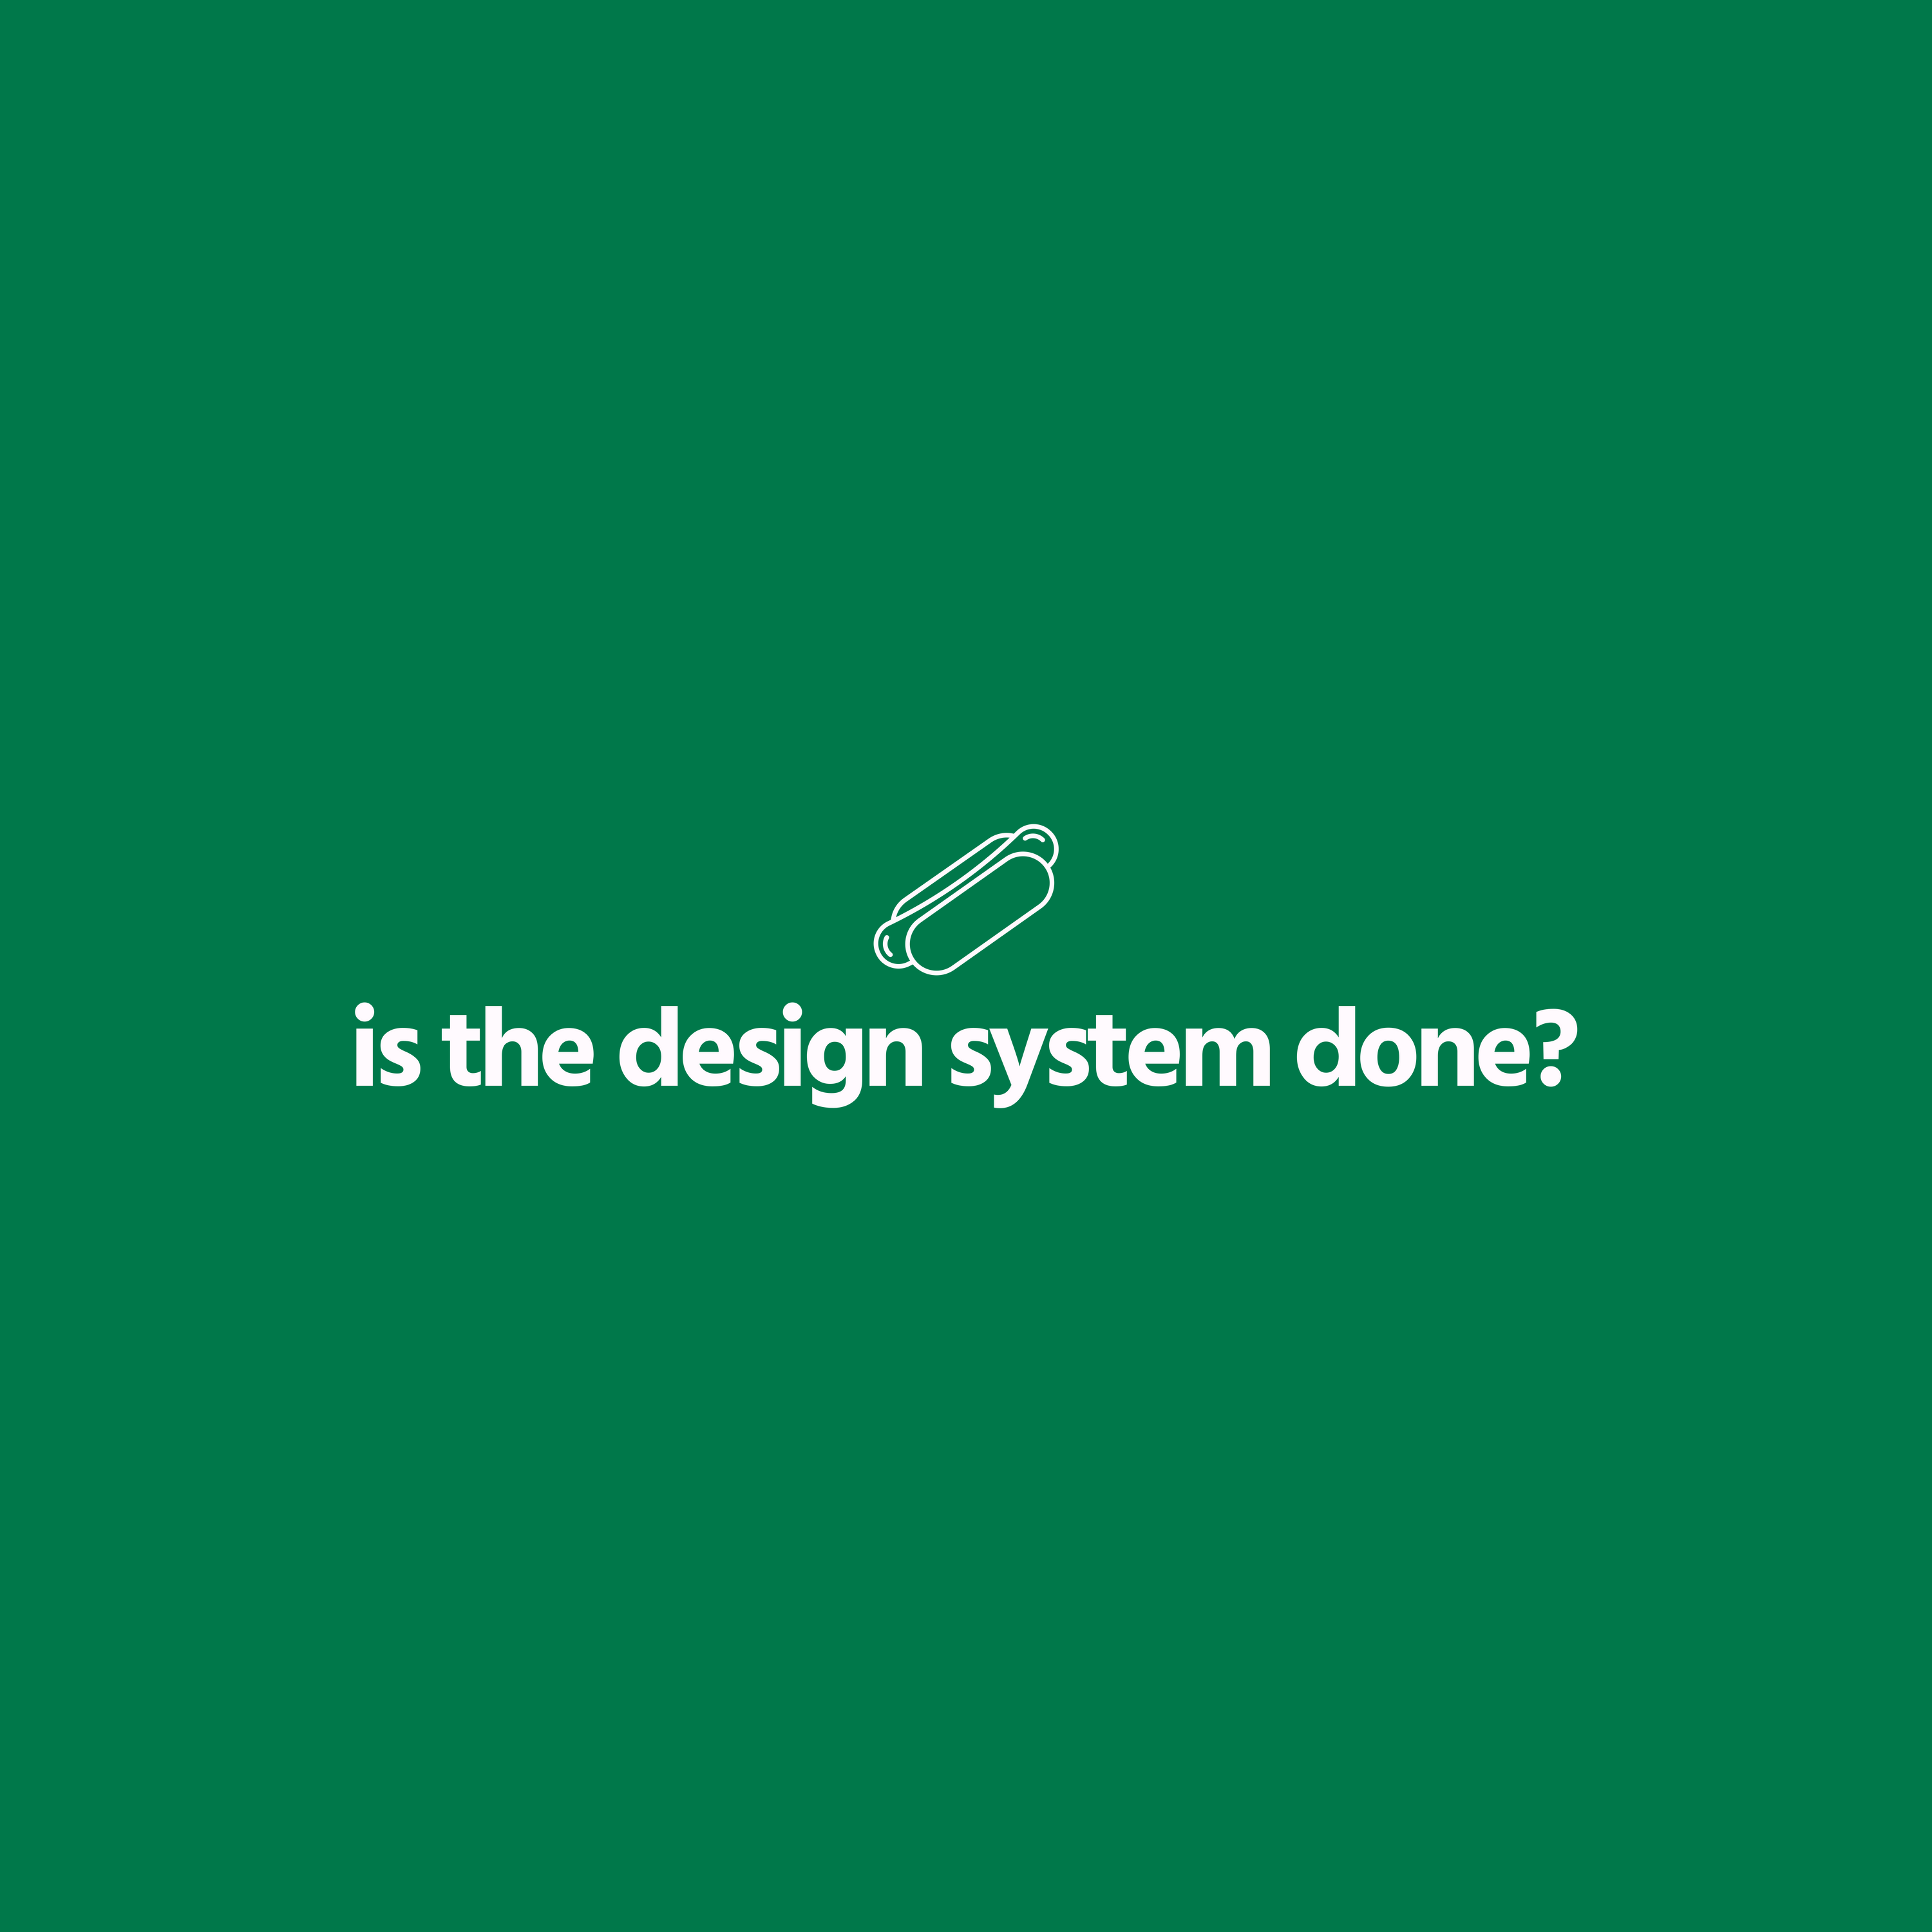 Is the design system done?